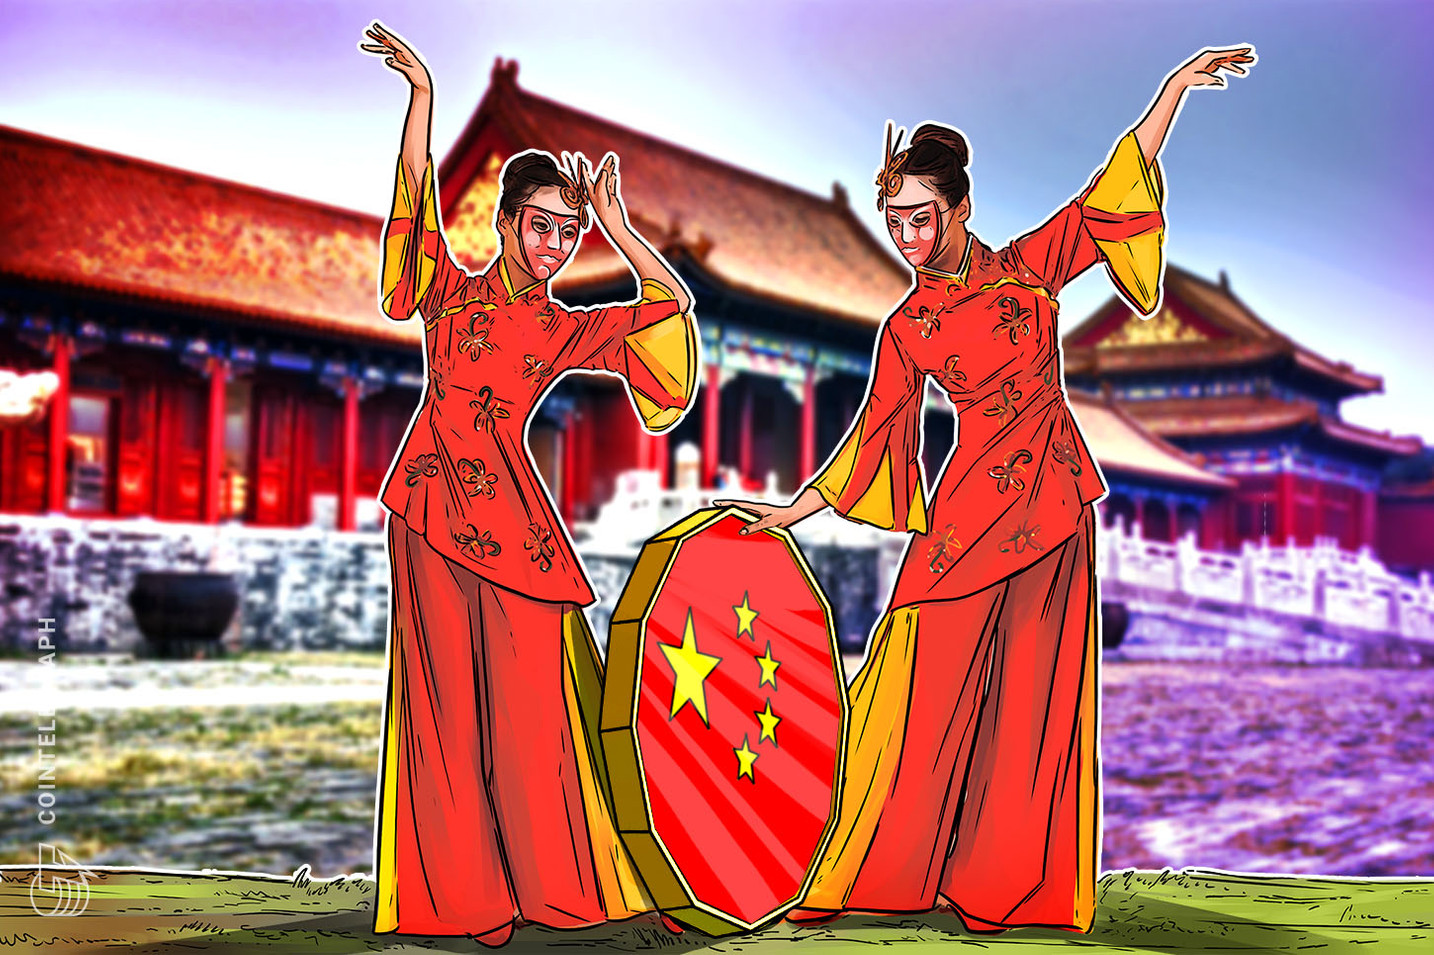 Chinese Banks Says They Will Not Freeze Legal Crypto Accounts